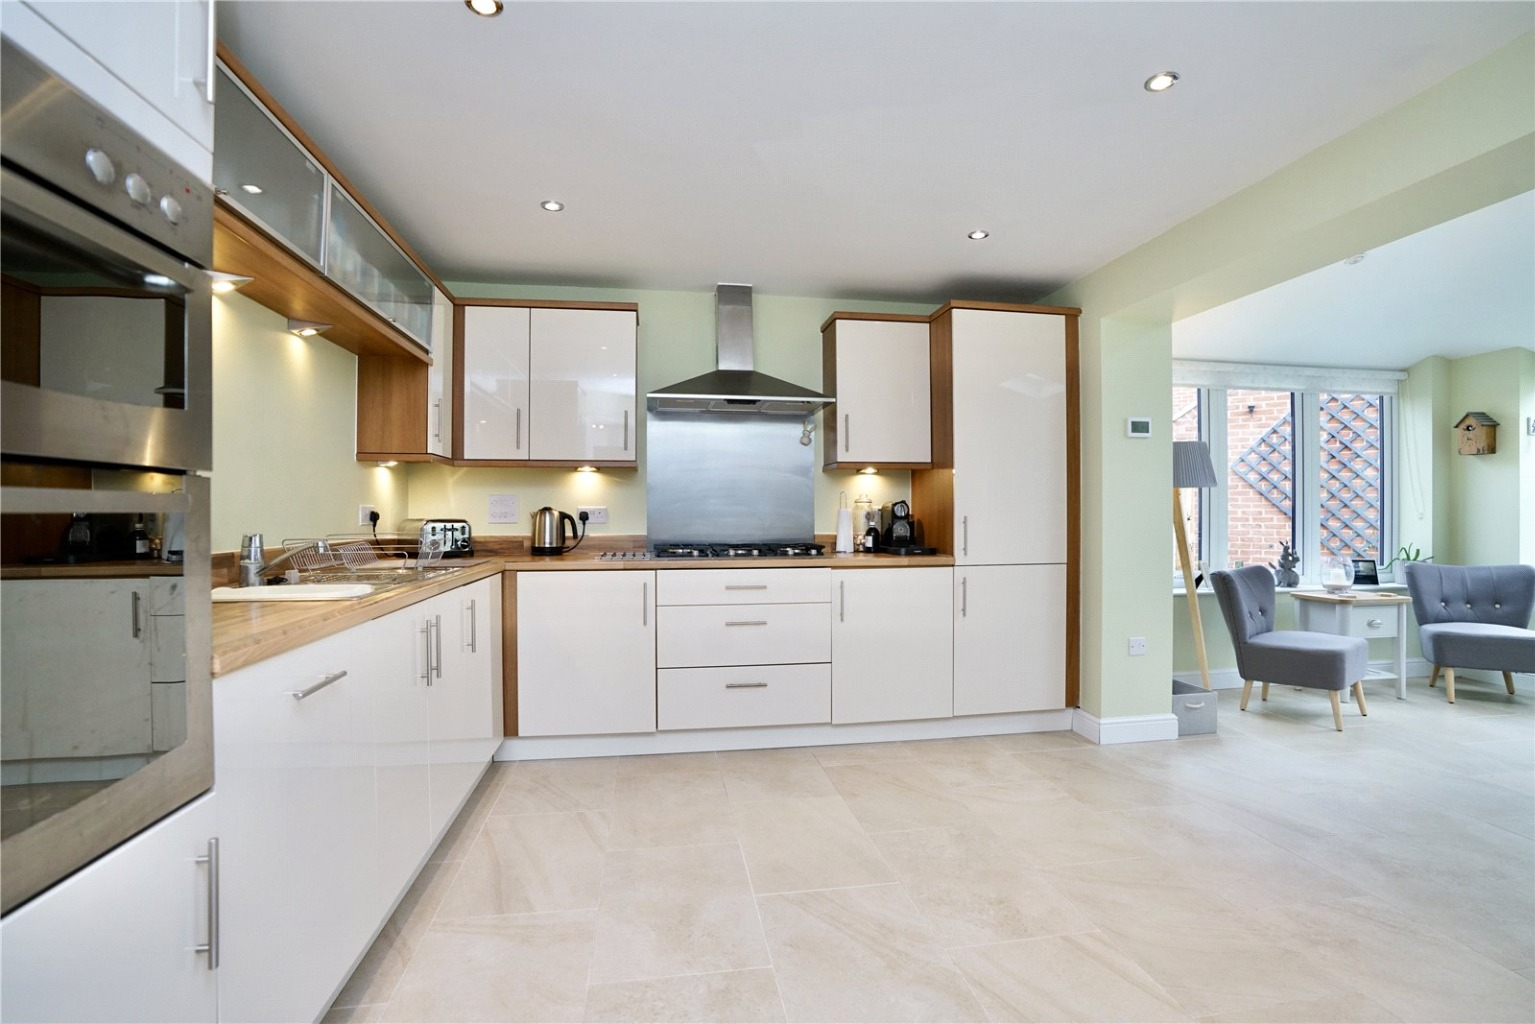 4 bed detached house for sale in Lannesbury Crescent, St. Neots  - Property Image 5